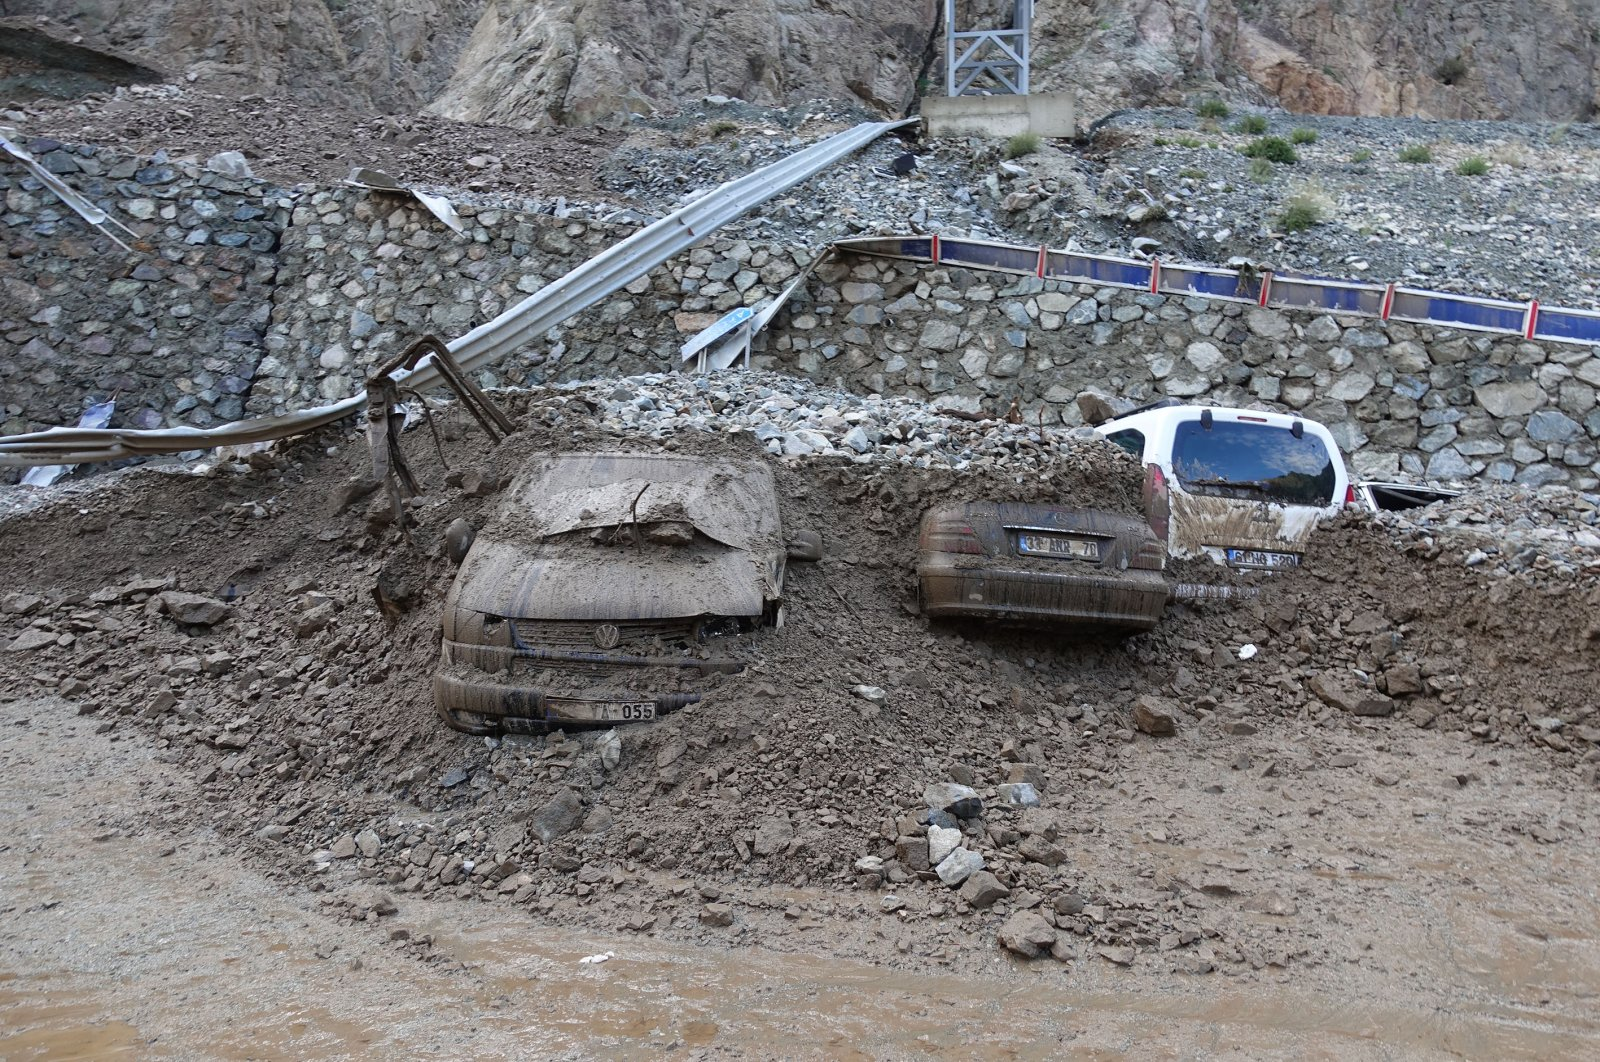 Cars buried under mud after the floods in Artvin, Turkey, July 13, 2020. (AA Photo)